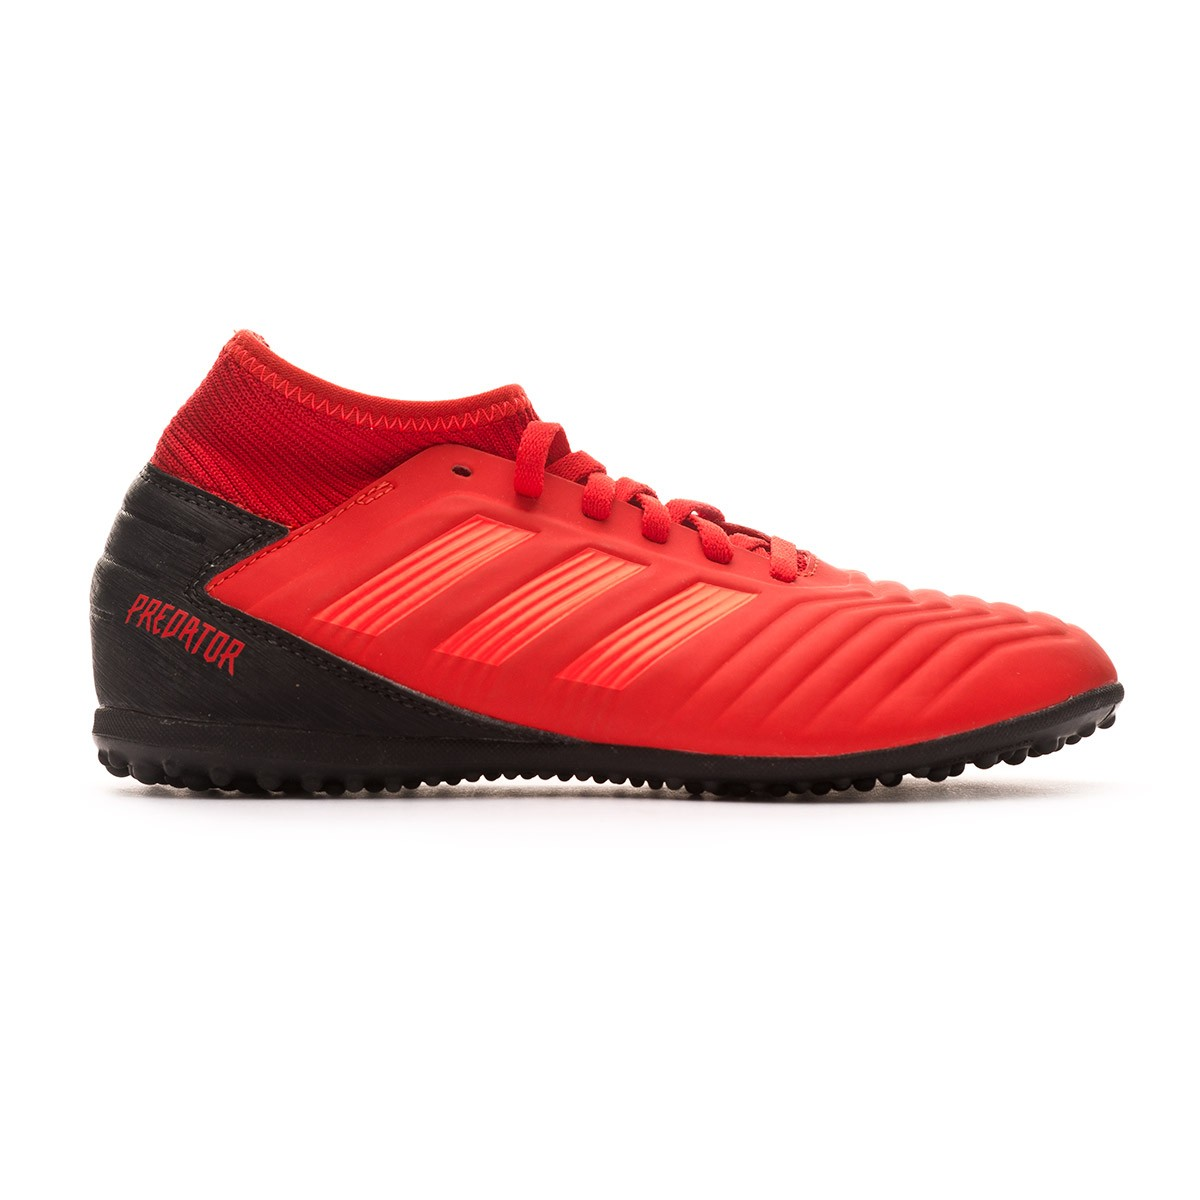 newest 1c1a8 28d0b Football Boot adidas Kids Predator Tango 19.3 Turf Active red-Solar red-Core  black - Football store Fútbol Emotion